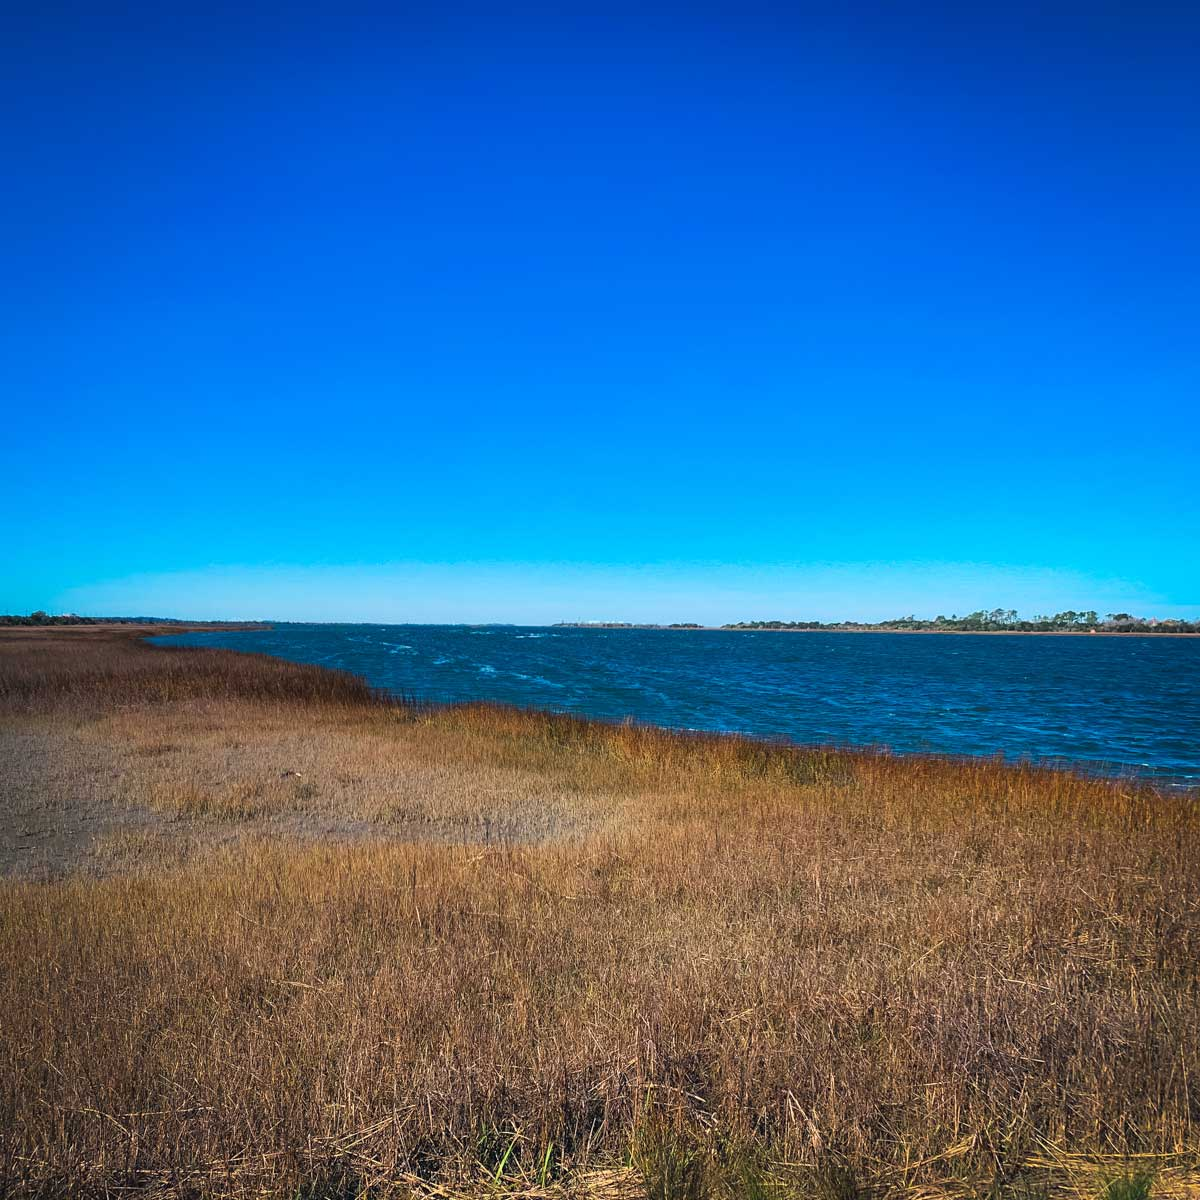 The marshland surrounding Fort Pulaski, one of the many cool things to do in Savannah, Georgia